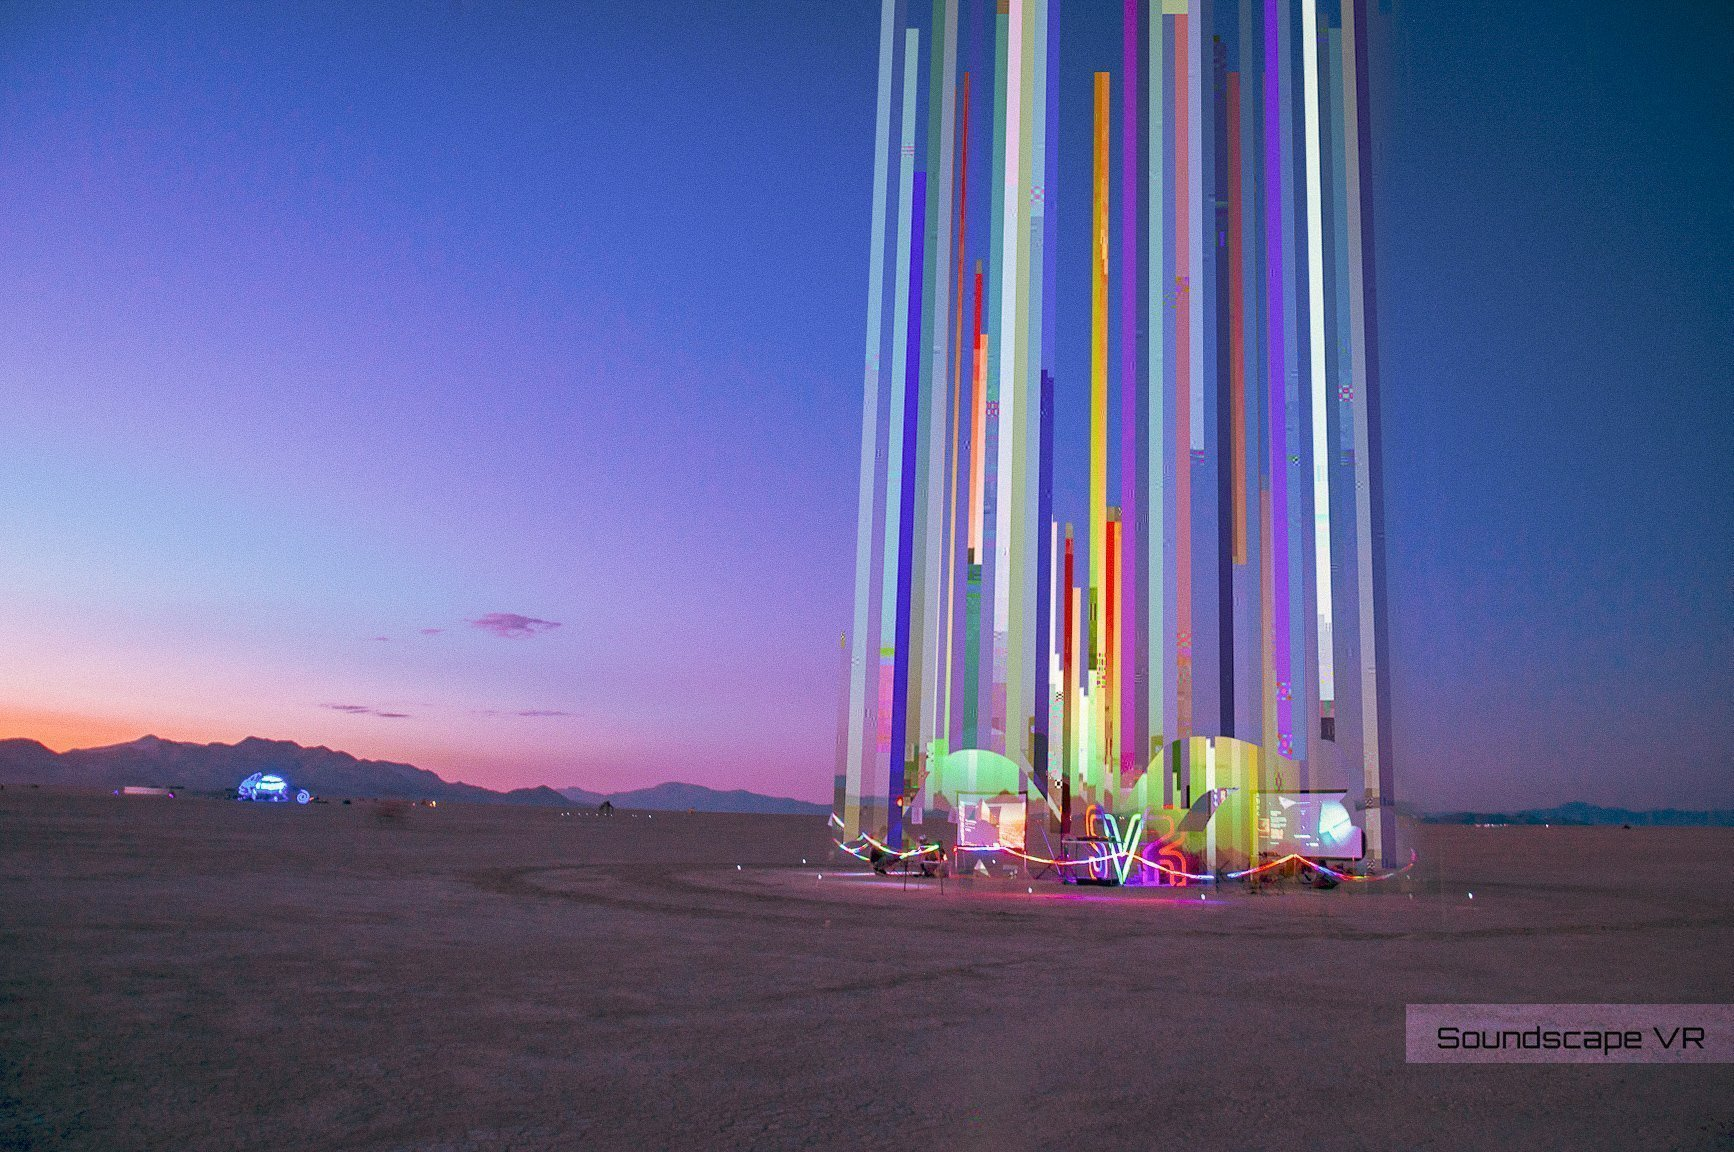 Soundscape VR at Burning Man at sunset